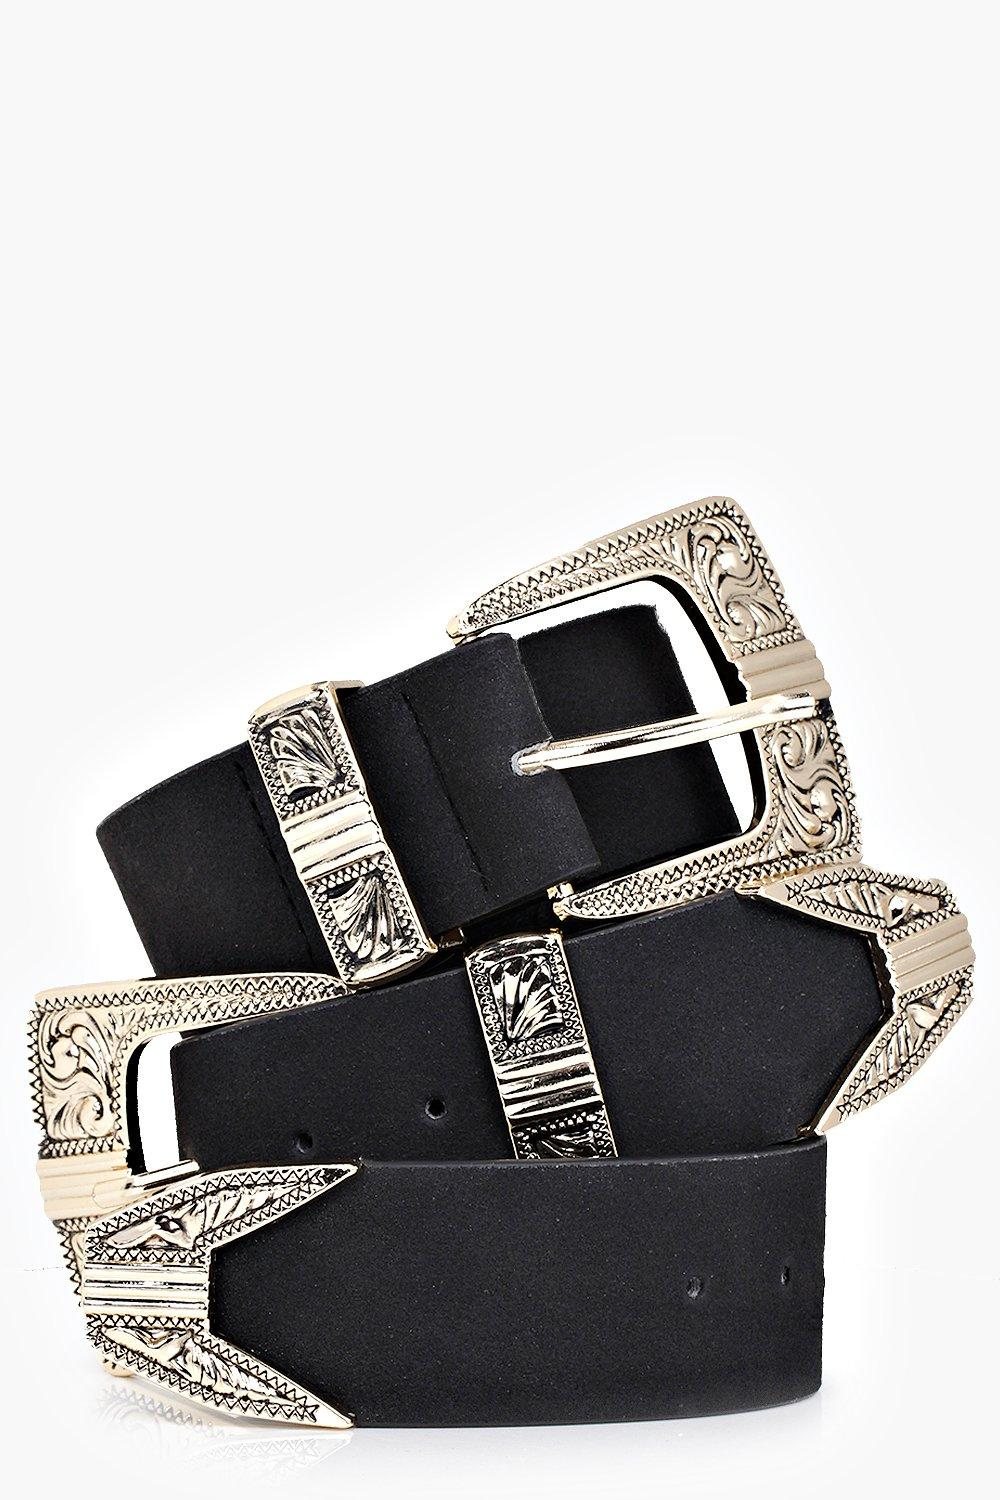 Suedette Double Buckle Western Belt - black - Cust